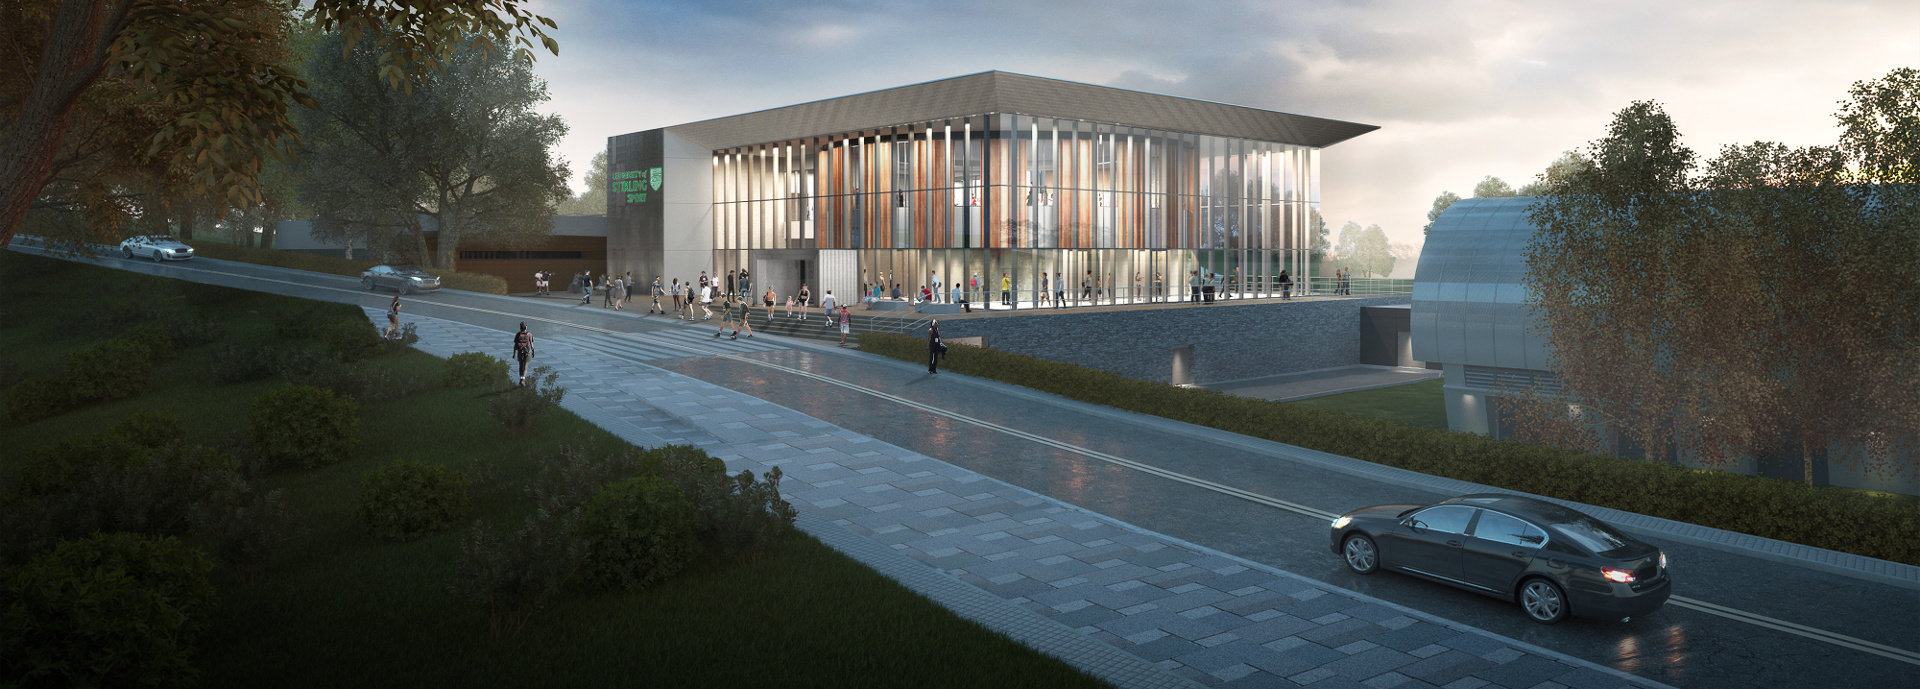 A computer generated image of the university of stirling's sports facilities redevelopment